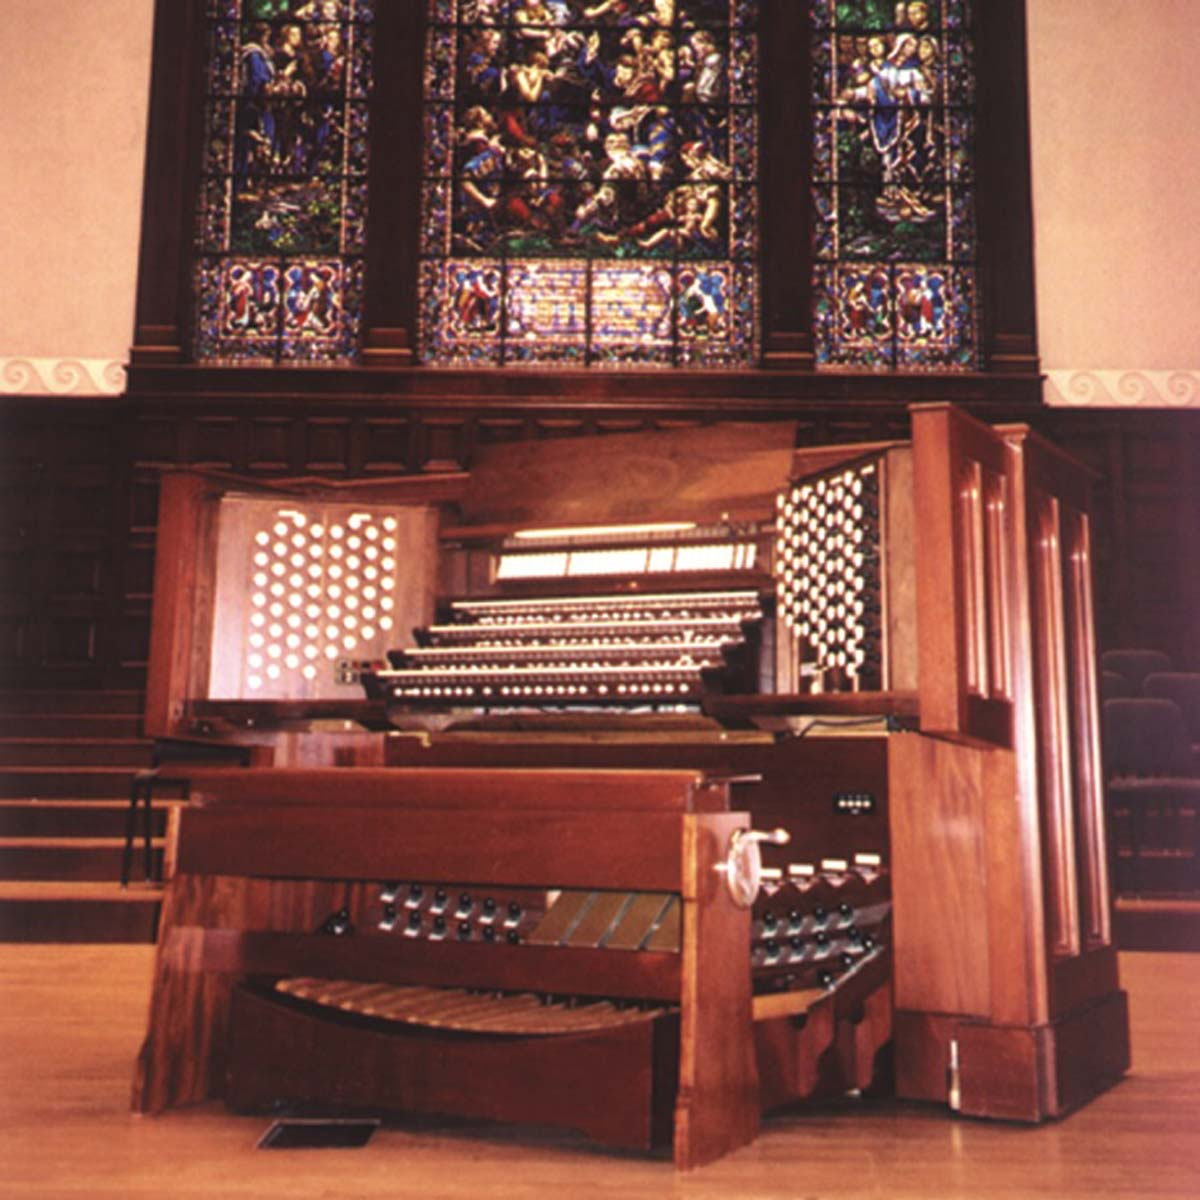 The Memorial Chapel's Casavant Organ